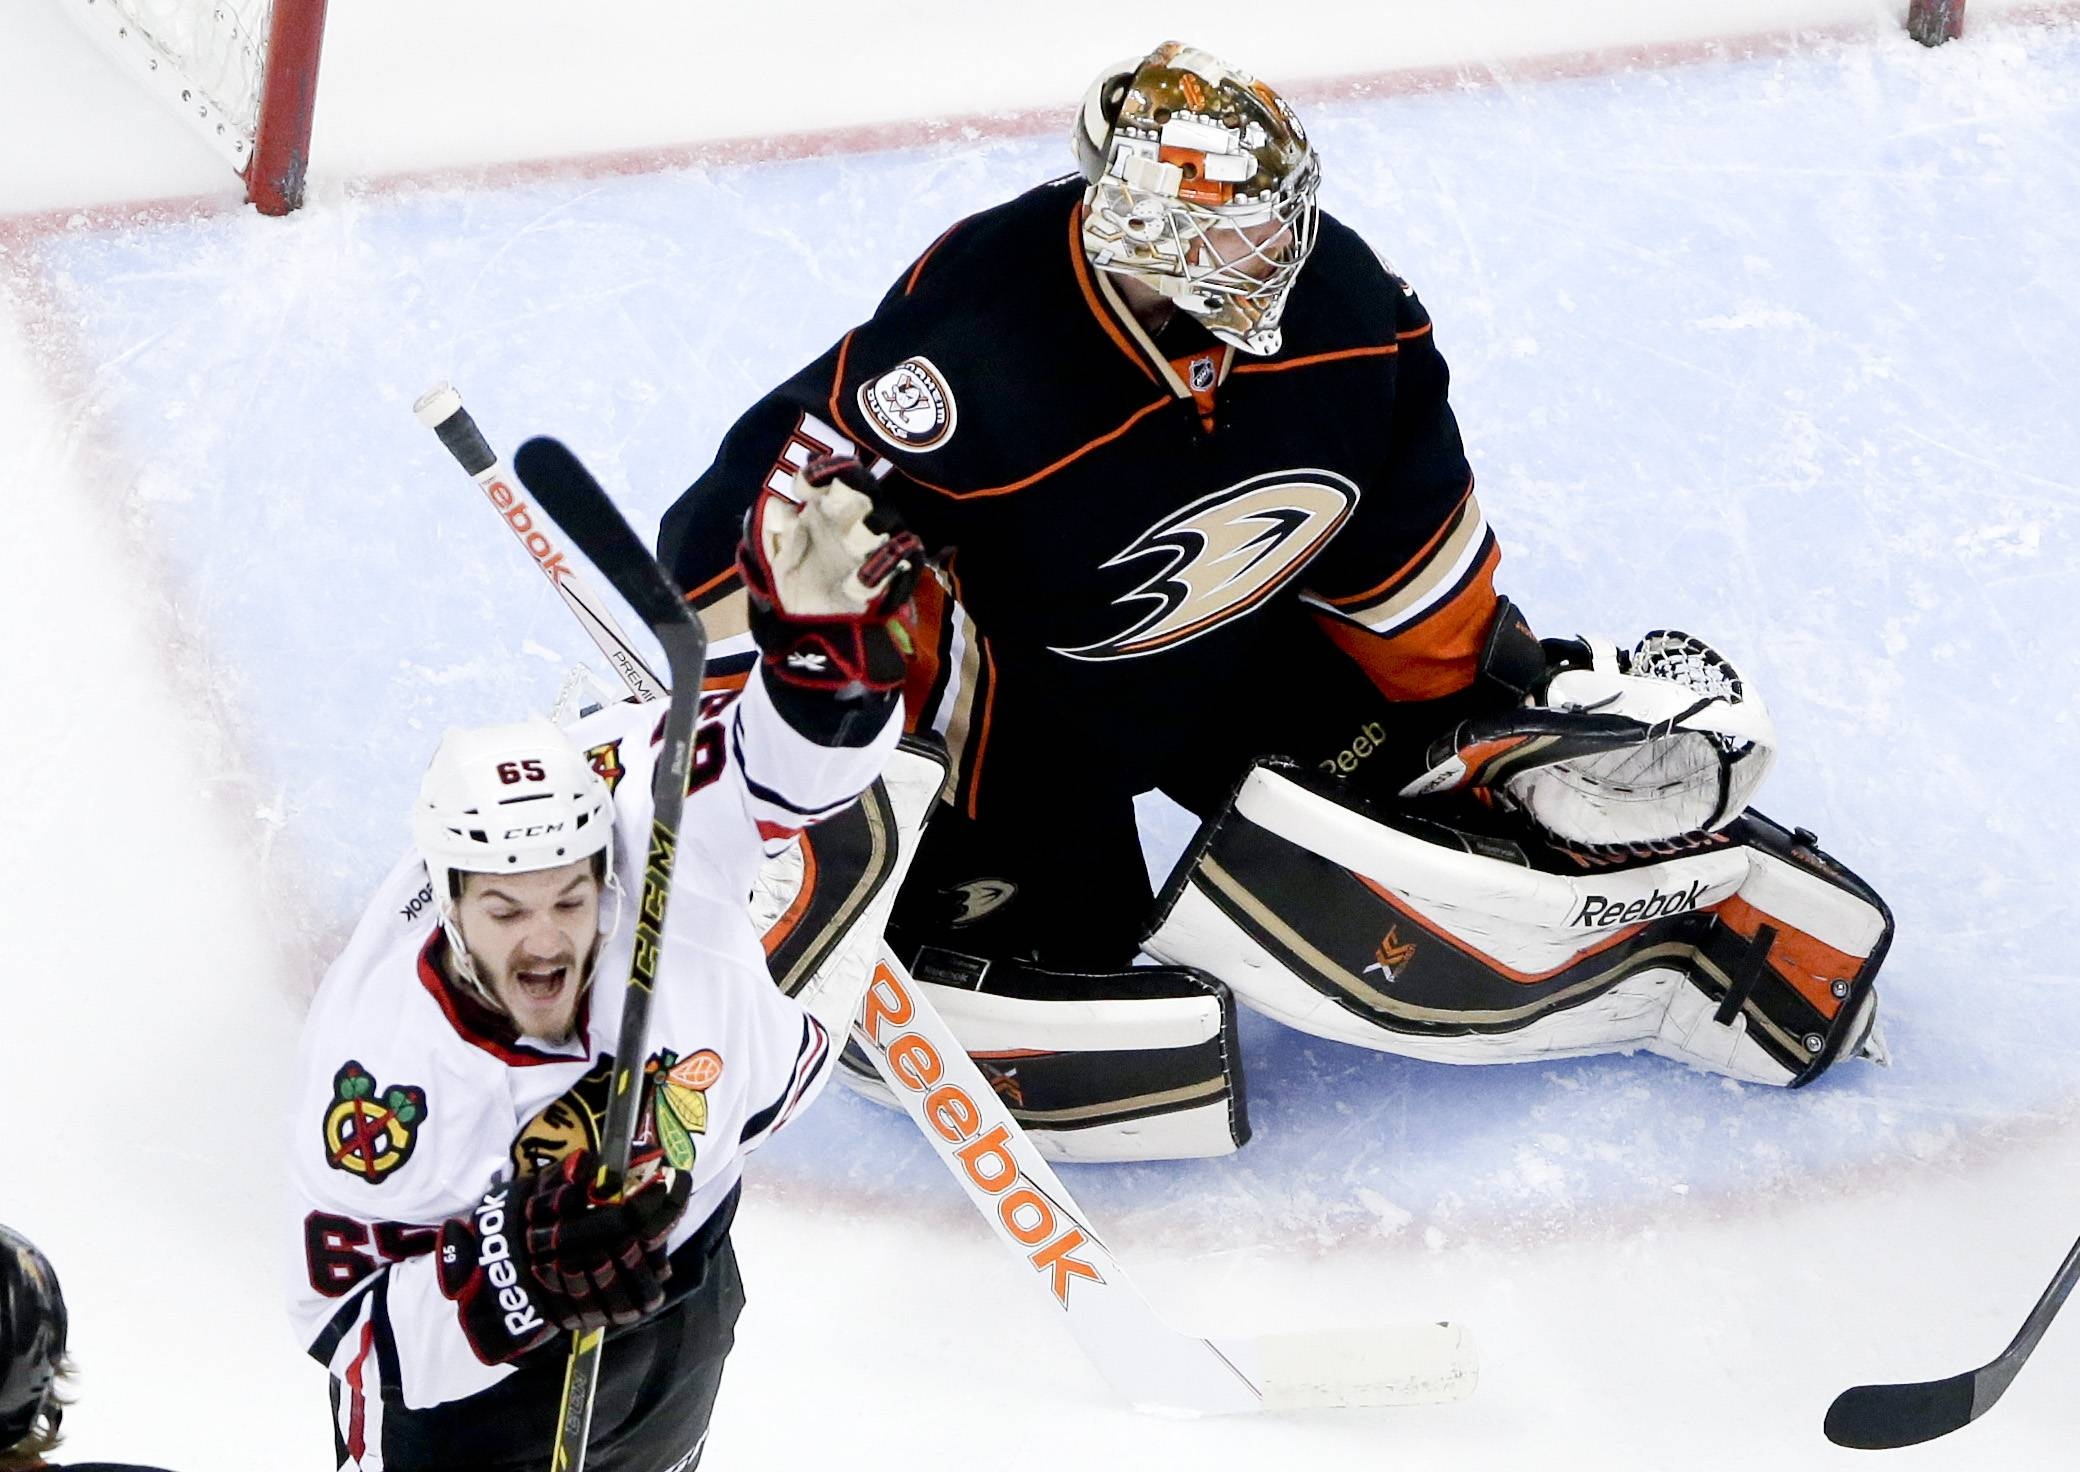 Chicago Blackhawks center Andrew Shaw, left, celebrates after scoring against Anaheim Ducks goalie Frederik Andersen during the first period of Game 2 of the 2015 Western Conference finals.